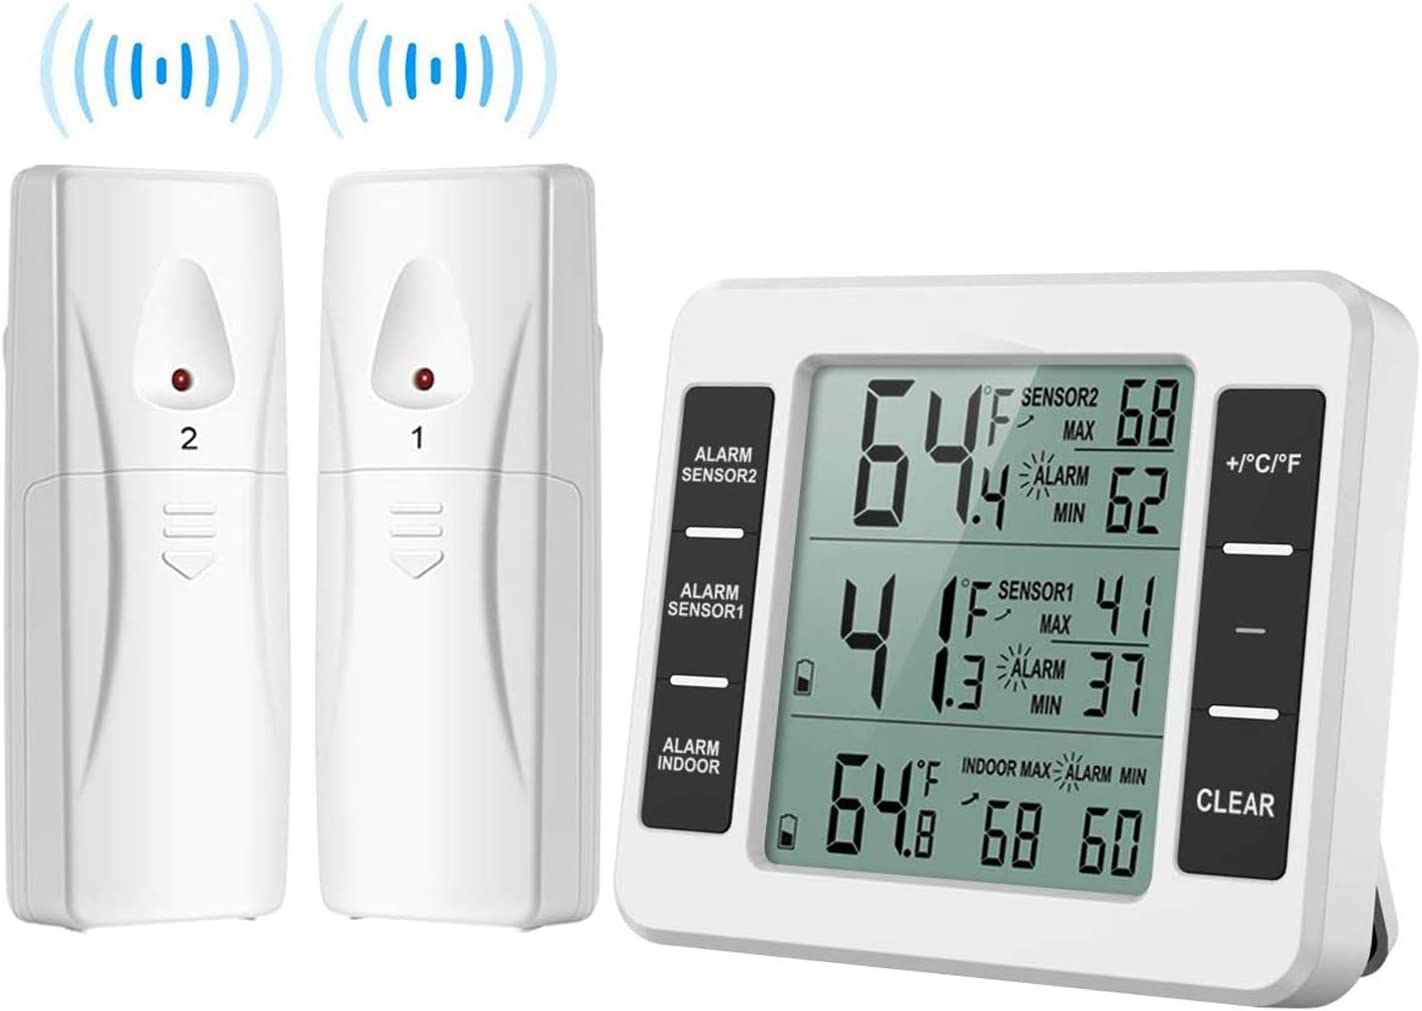 [Upgraded] Refrigerator Thermometer, Wireless Indoor Outdoor Digital Thermometer, Sensor Temperature Monitor with 3 Channels Min/Max Audible Alarm Temperature Gauge for Freezer Kitchen Home